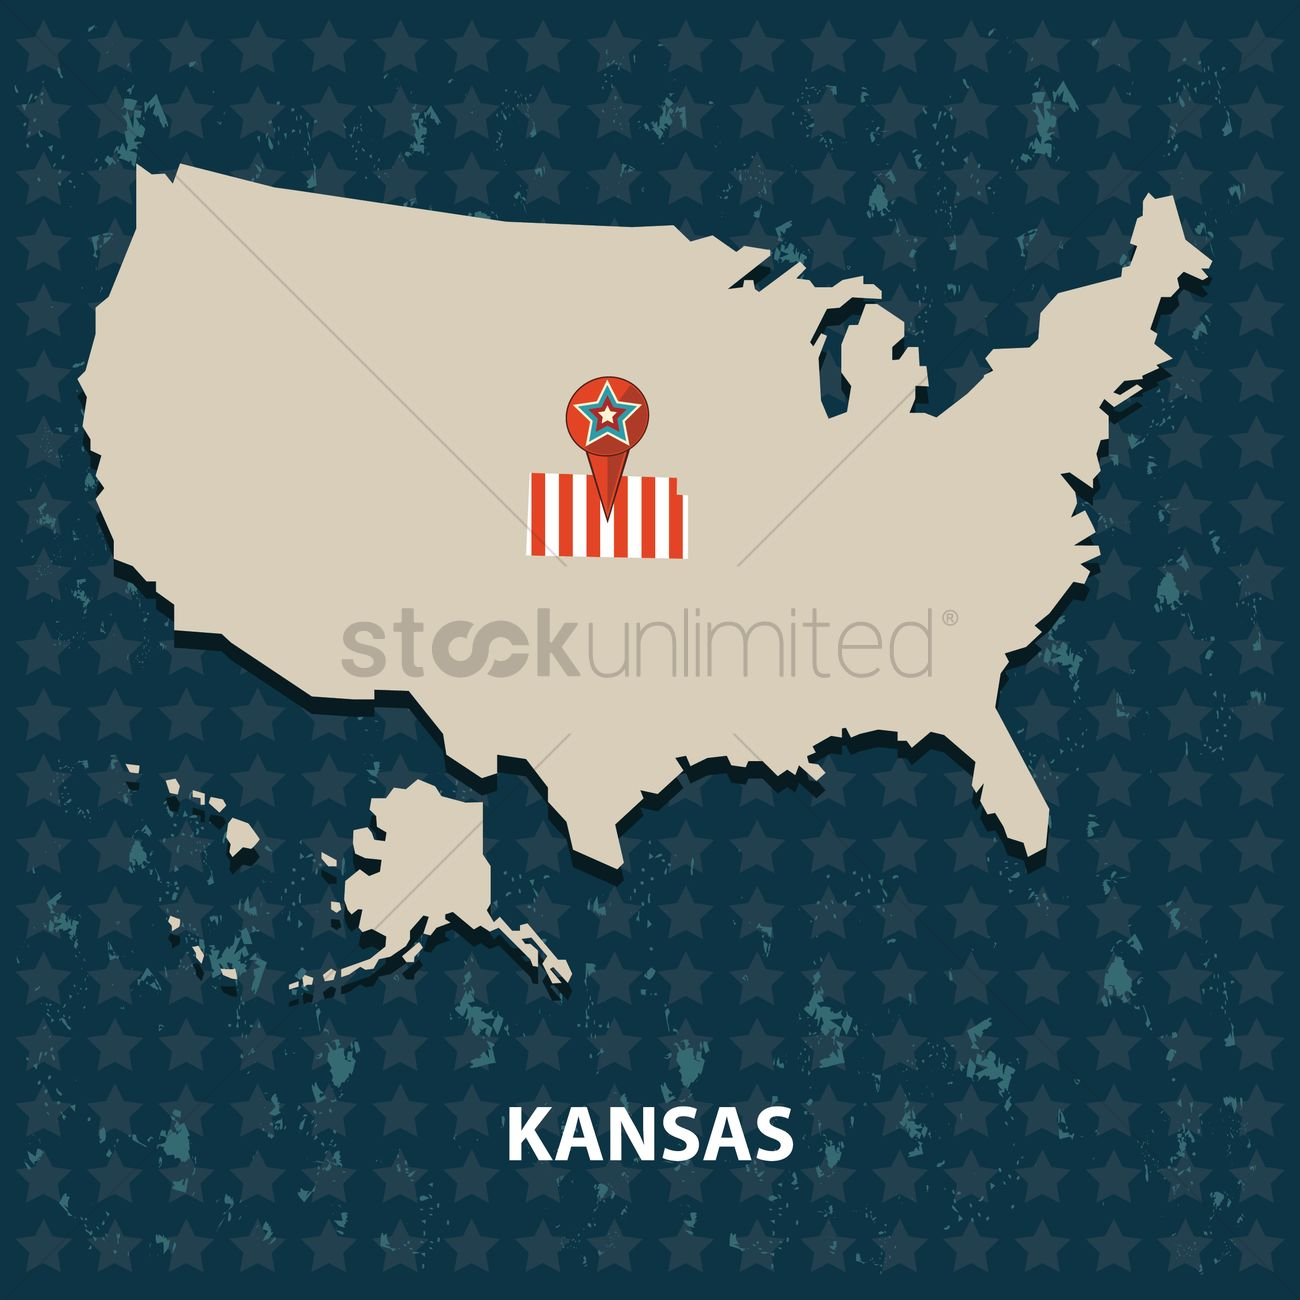 Kansas State On The Map Of Usa Vector Image 1552231 Stockunlimited